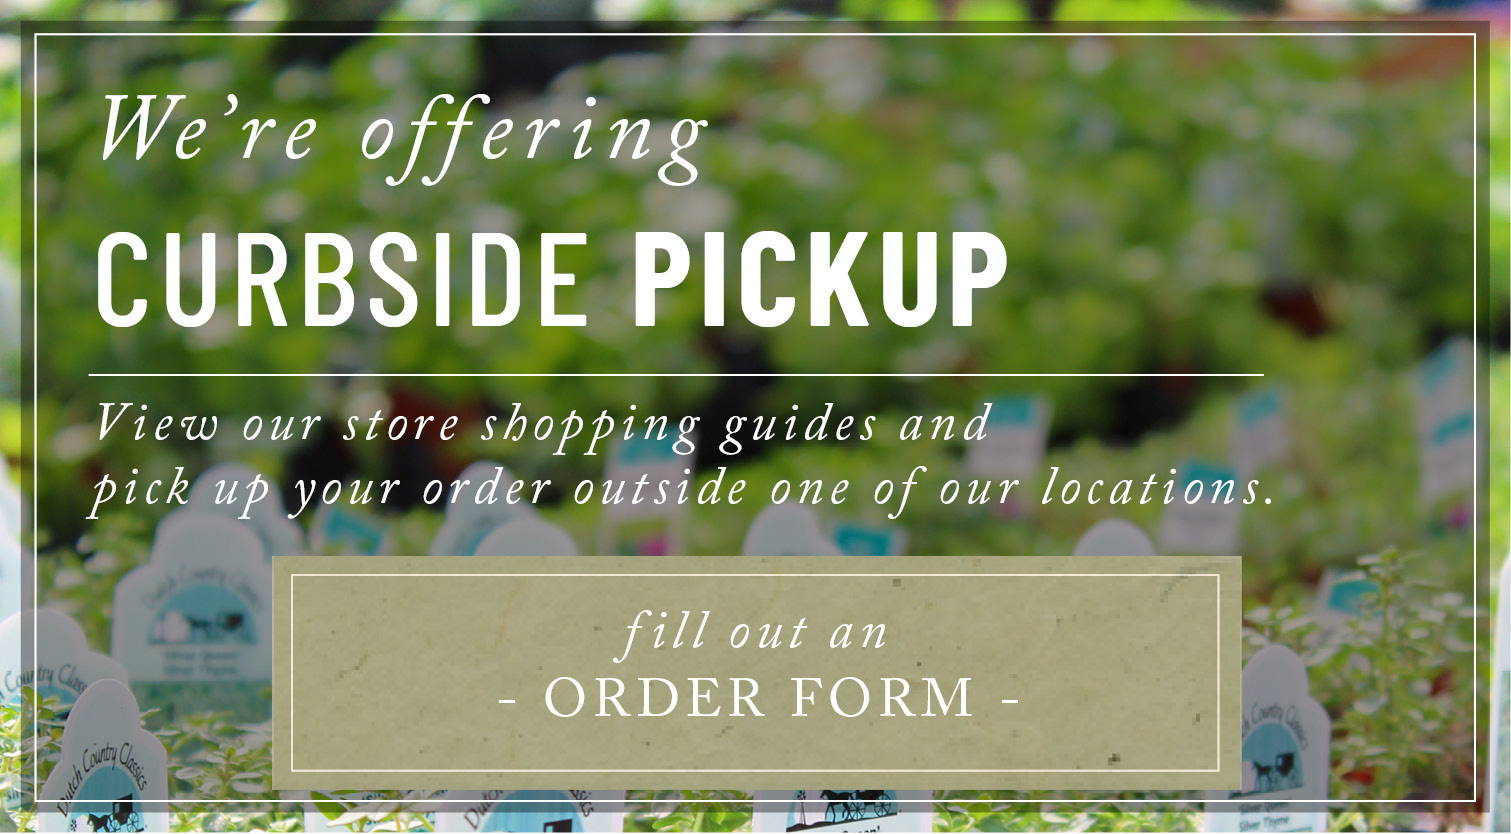 Select A Store for Curbside Pickup